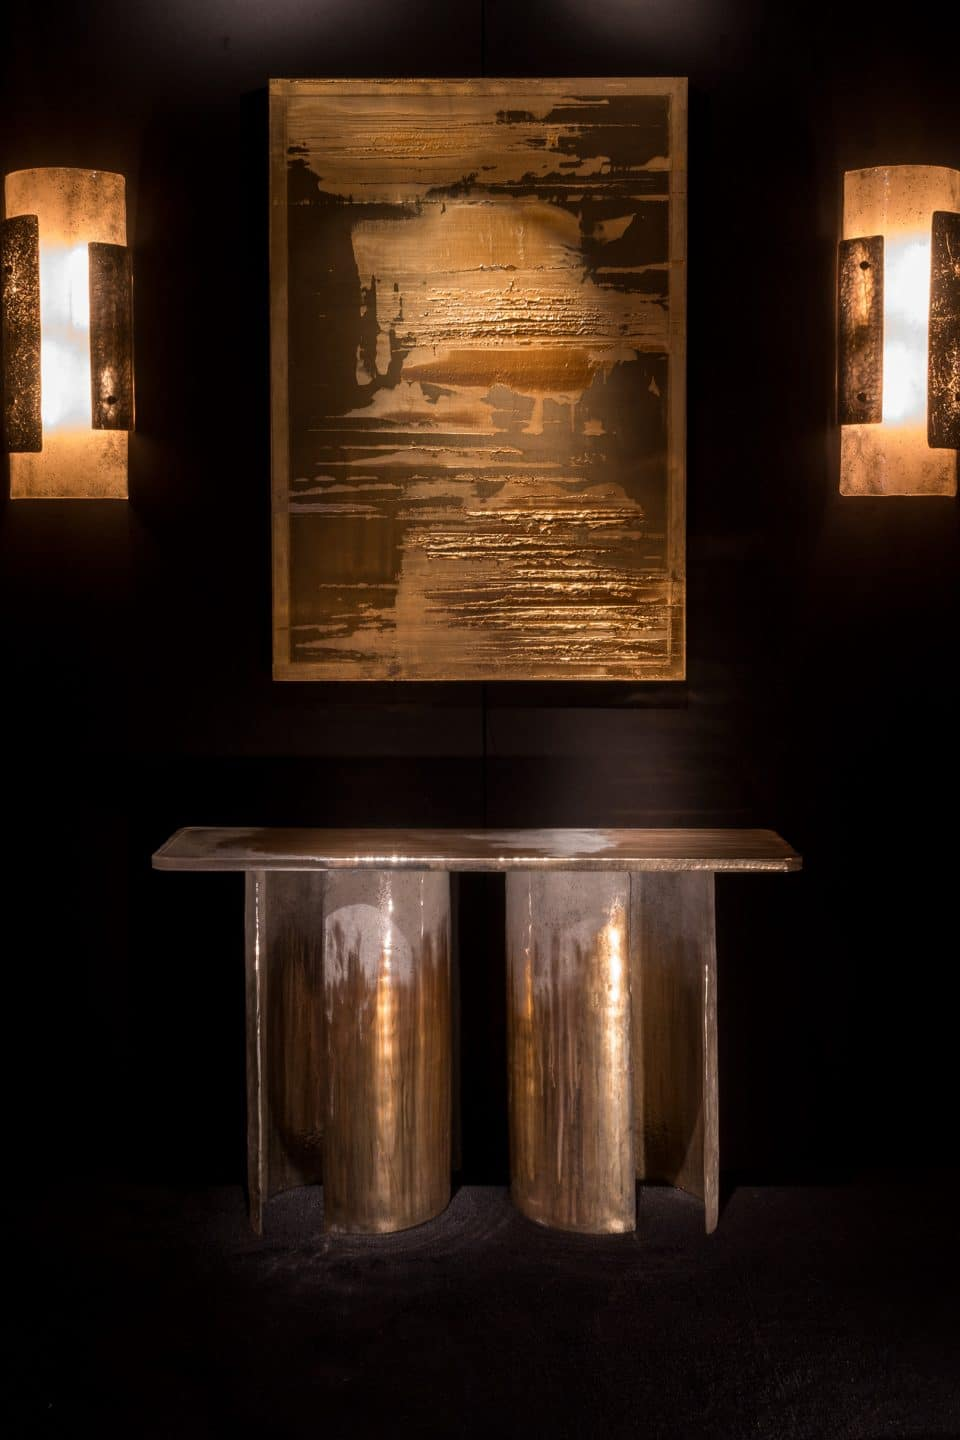 London Contemporary Design Connoisseur Charles Burnand Collaborates with Top Designers on Their Dream Creations